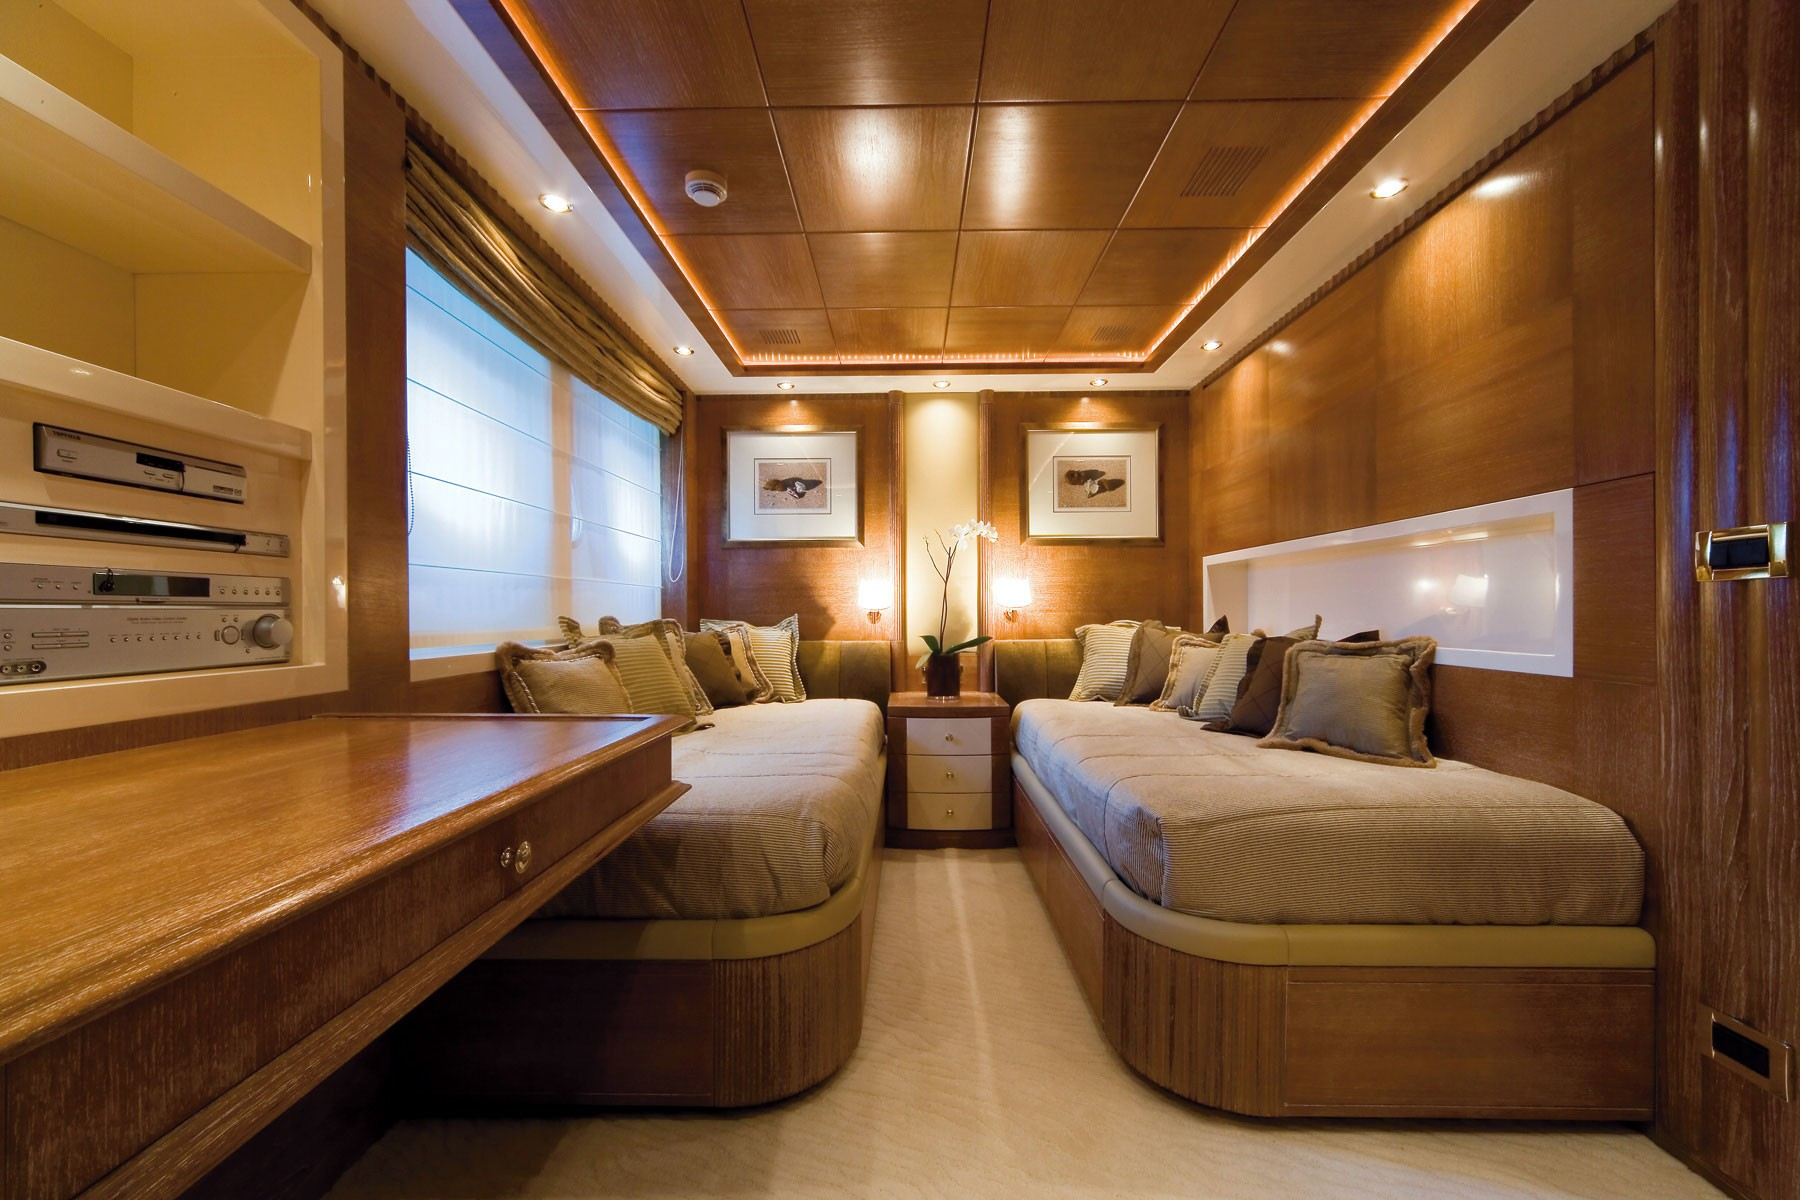 Profile: Yacht O'CEANOS's Twin Bed Cabin Image